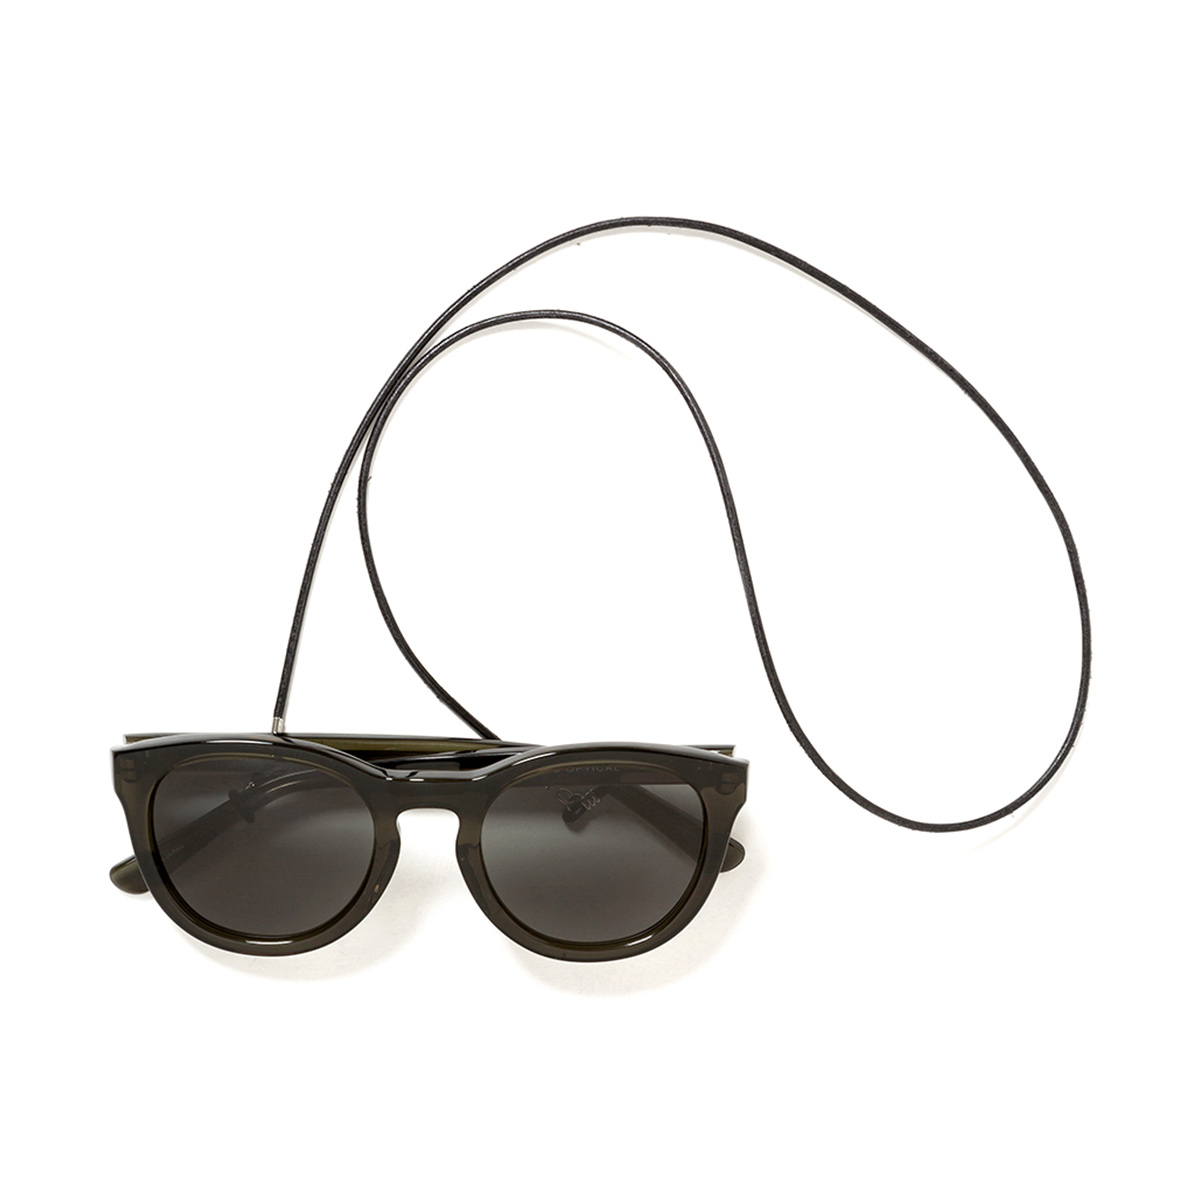 nonnative / DWELLER SUNGLASSES WITH LEATHER CODE (Dk.Olive)